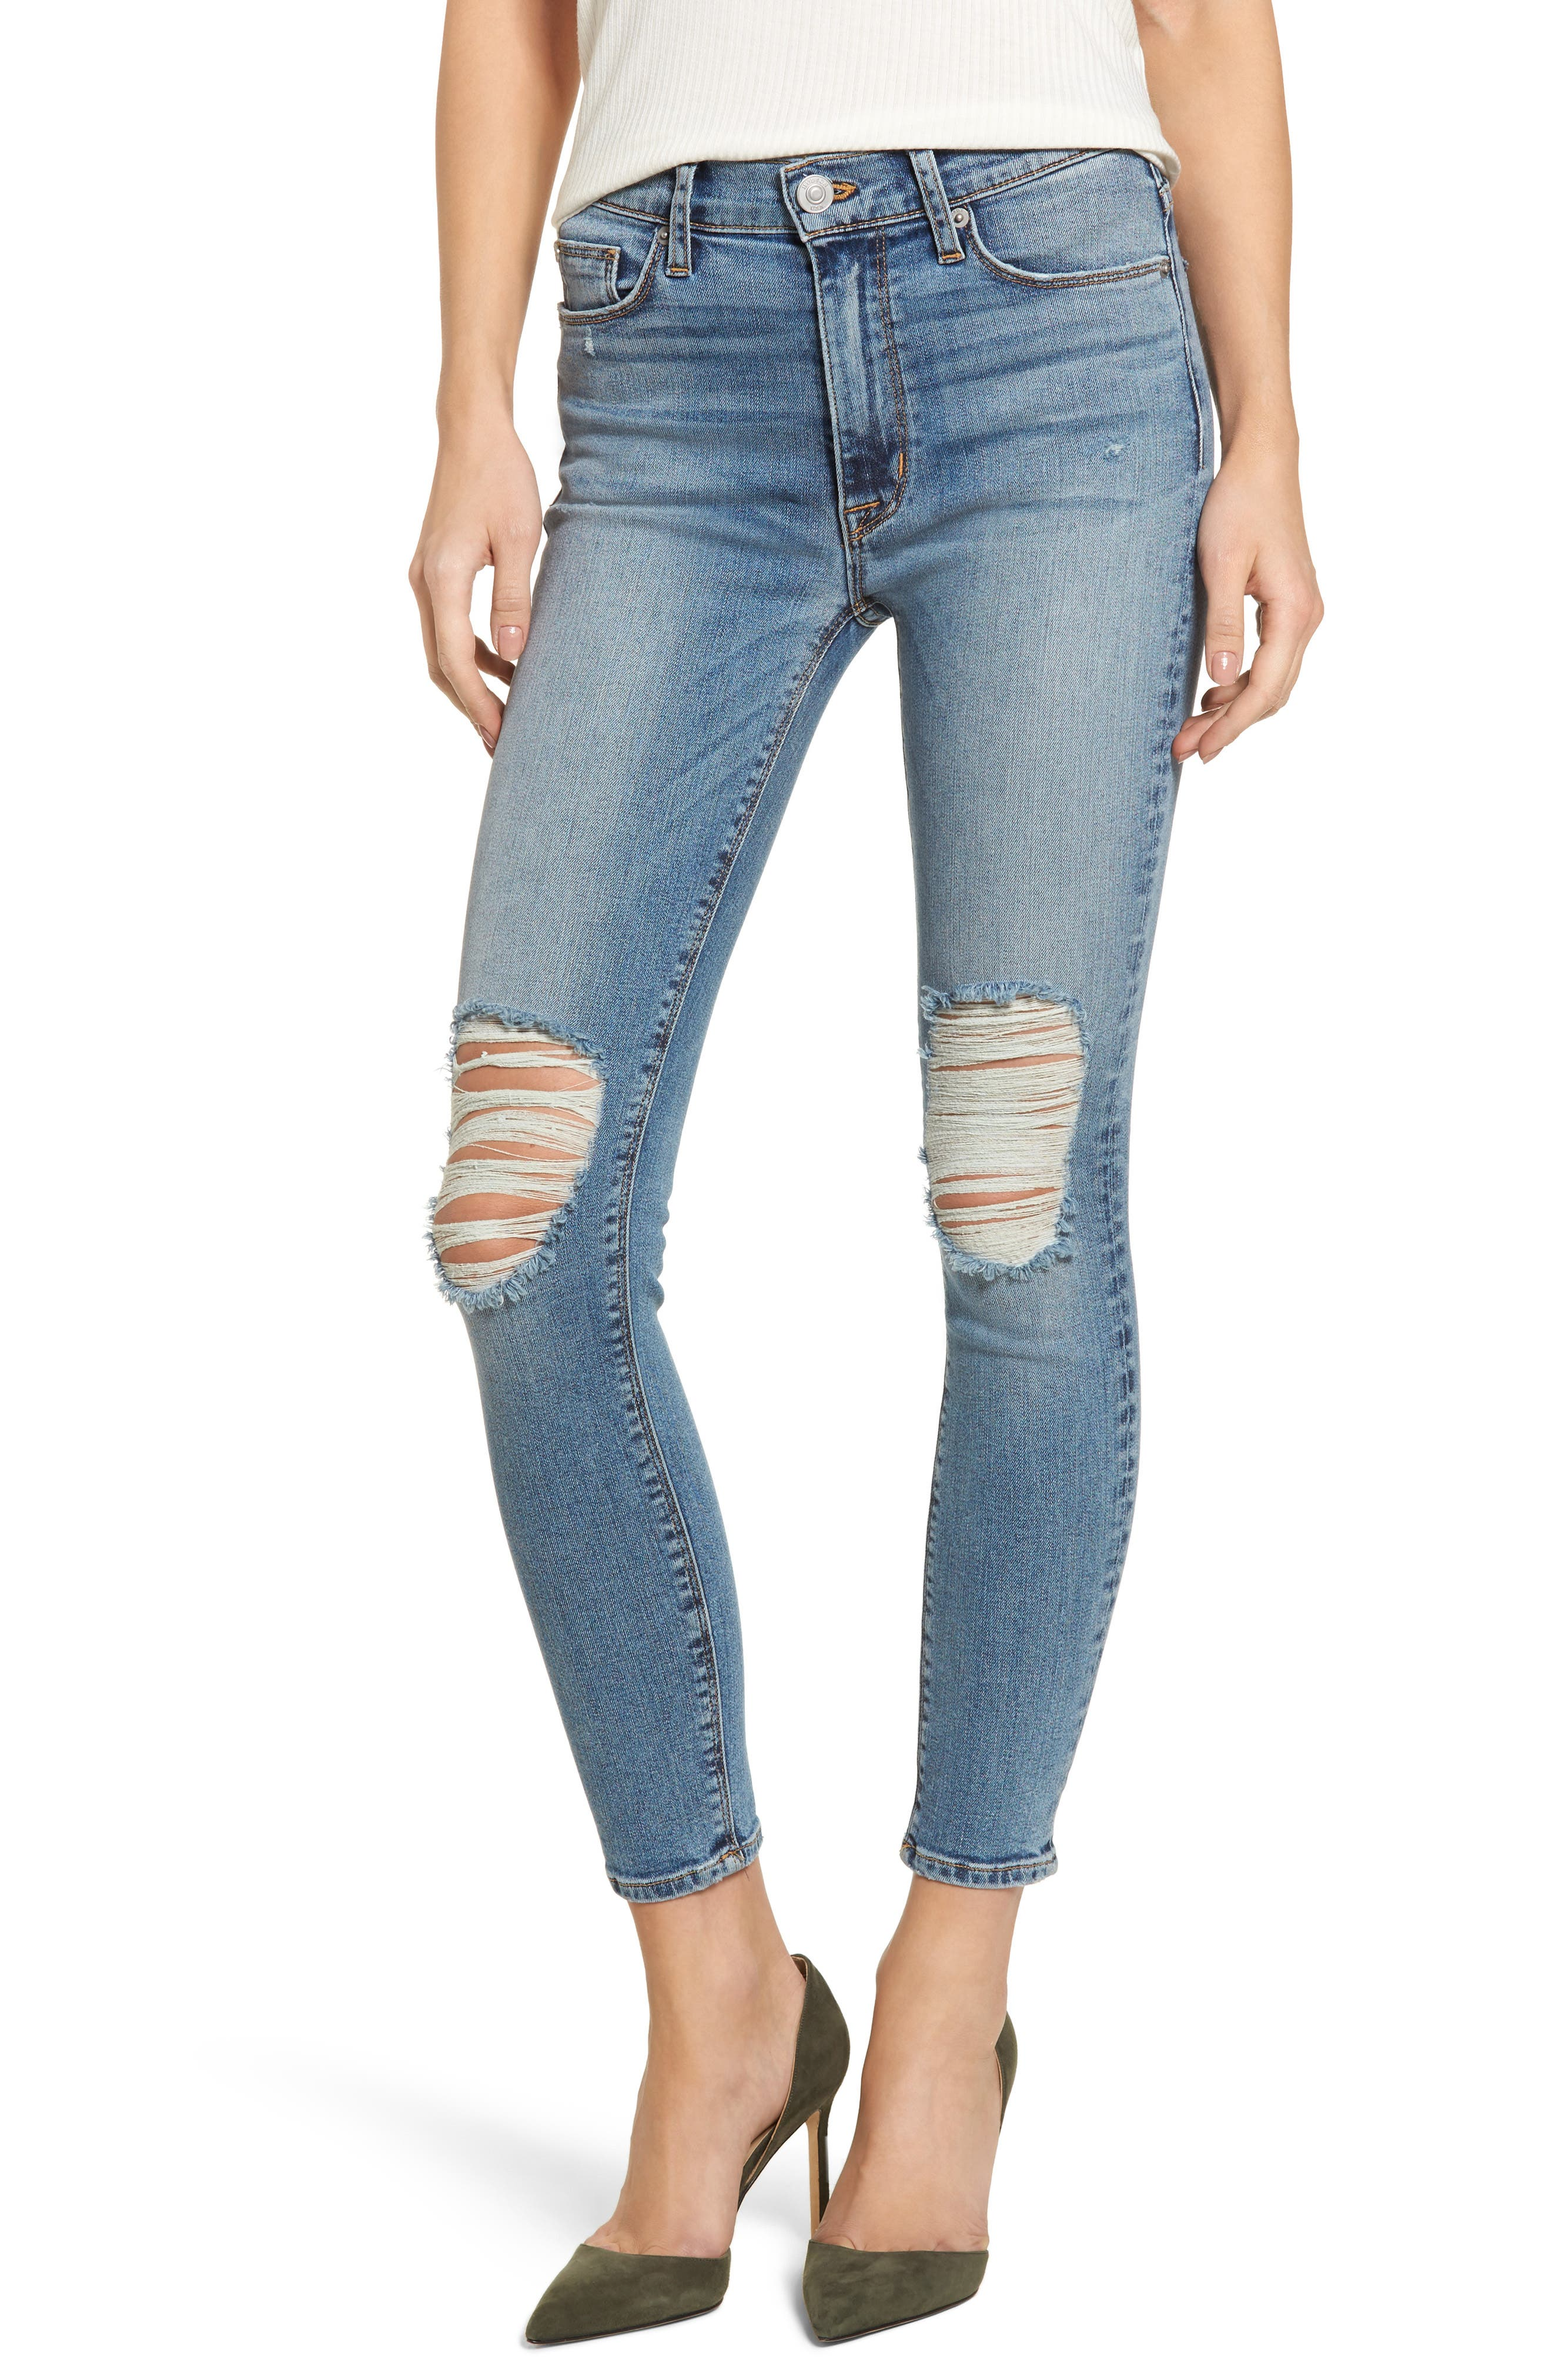 Barbara High Waist Ankle Skinny Jeans,                         Main,                         color, Confection